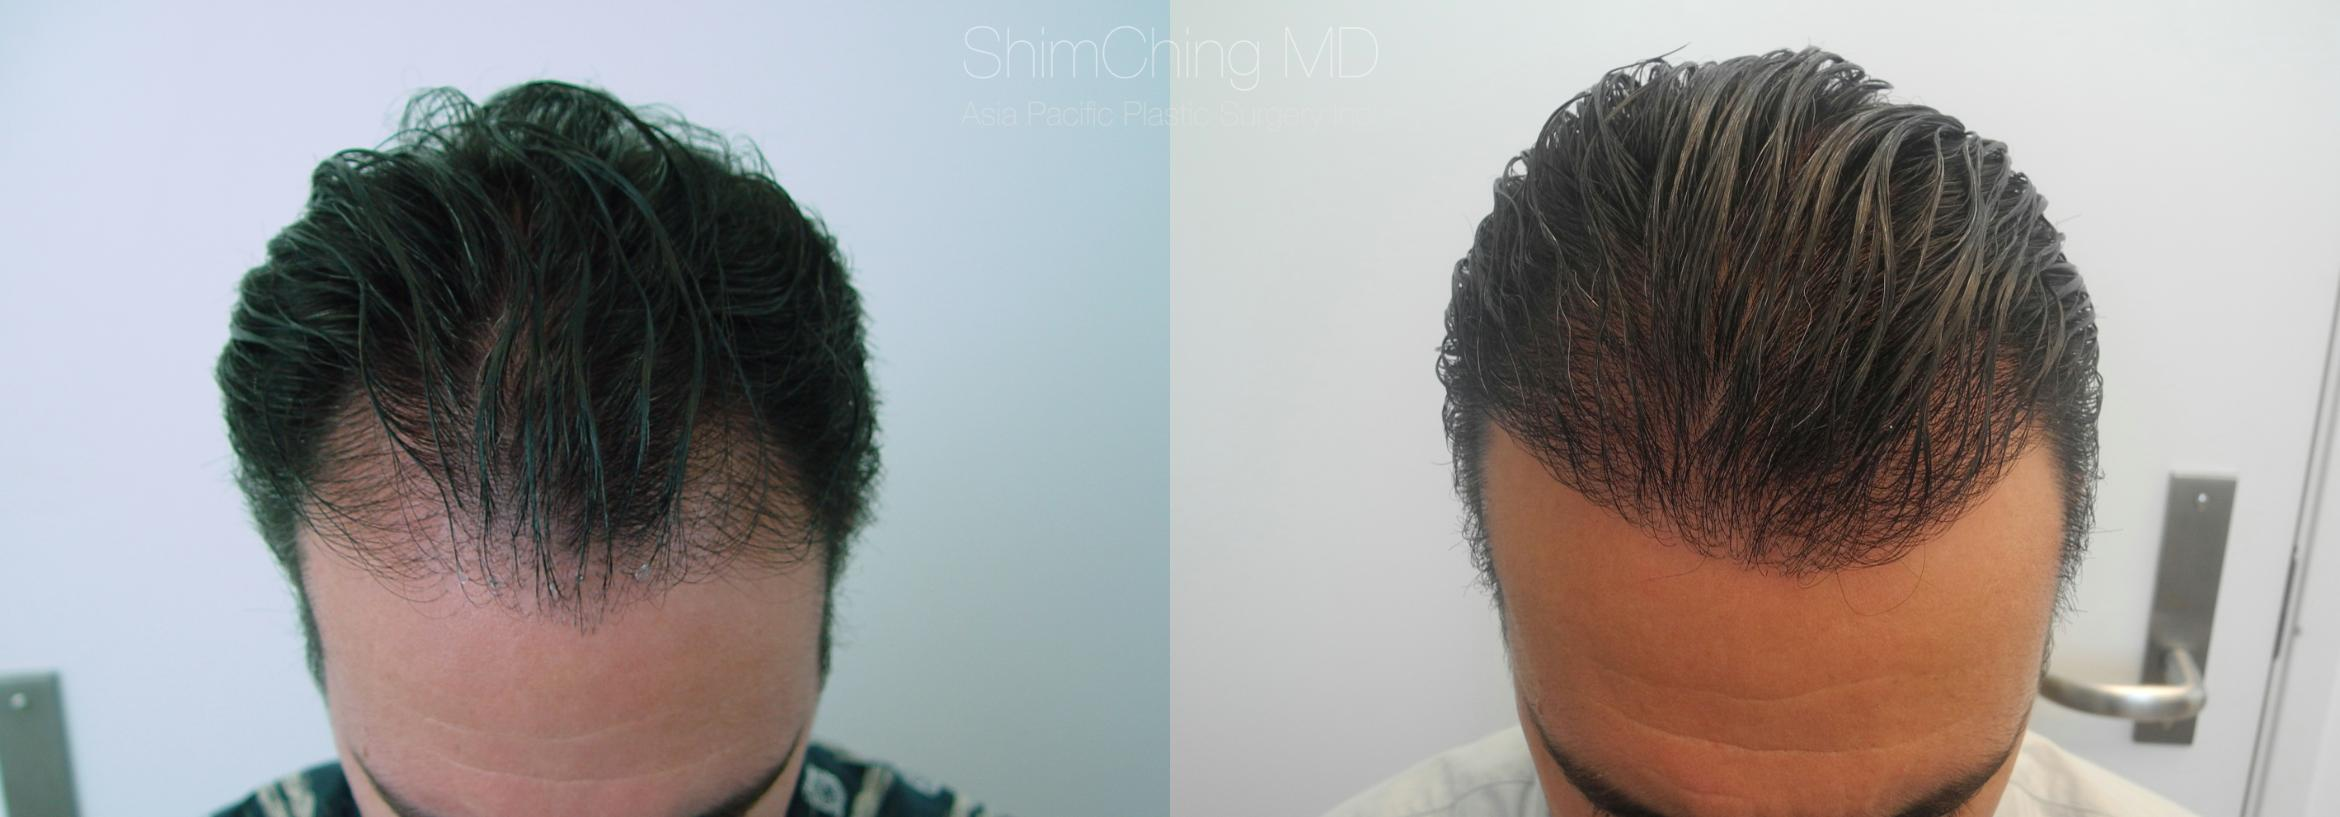 Hair Restoration Case 219 Before & After View #1 | Honolulu, HI | Shim Ching, MD: Asia Pacific Plastic Surgery